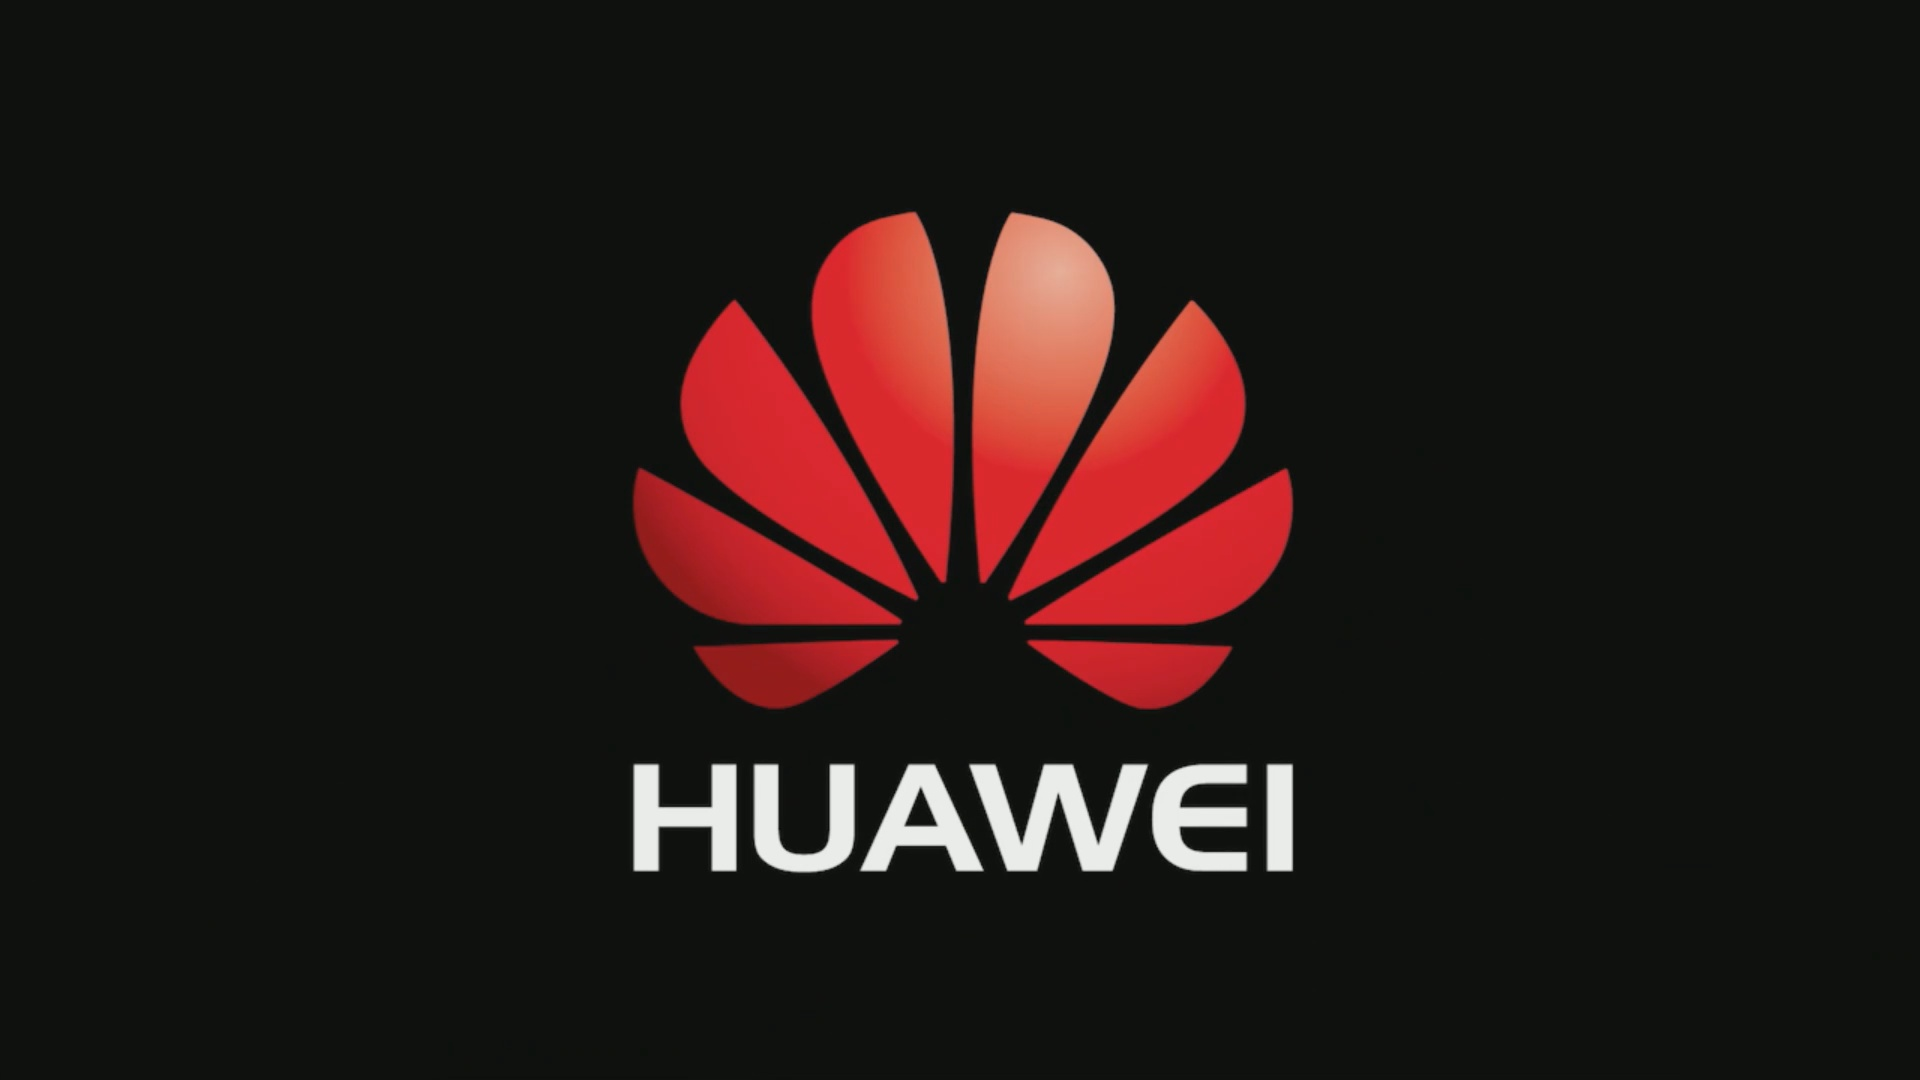 Fixed - Sound Not Works on Huawei G7005 phone